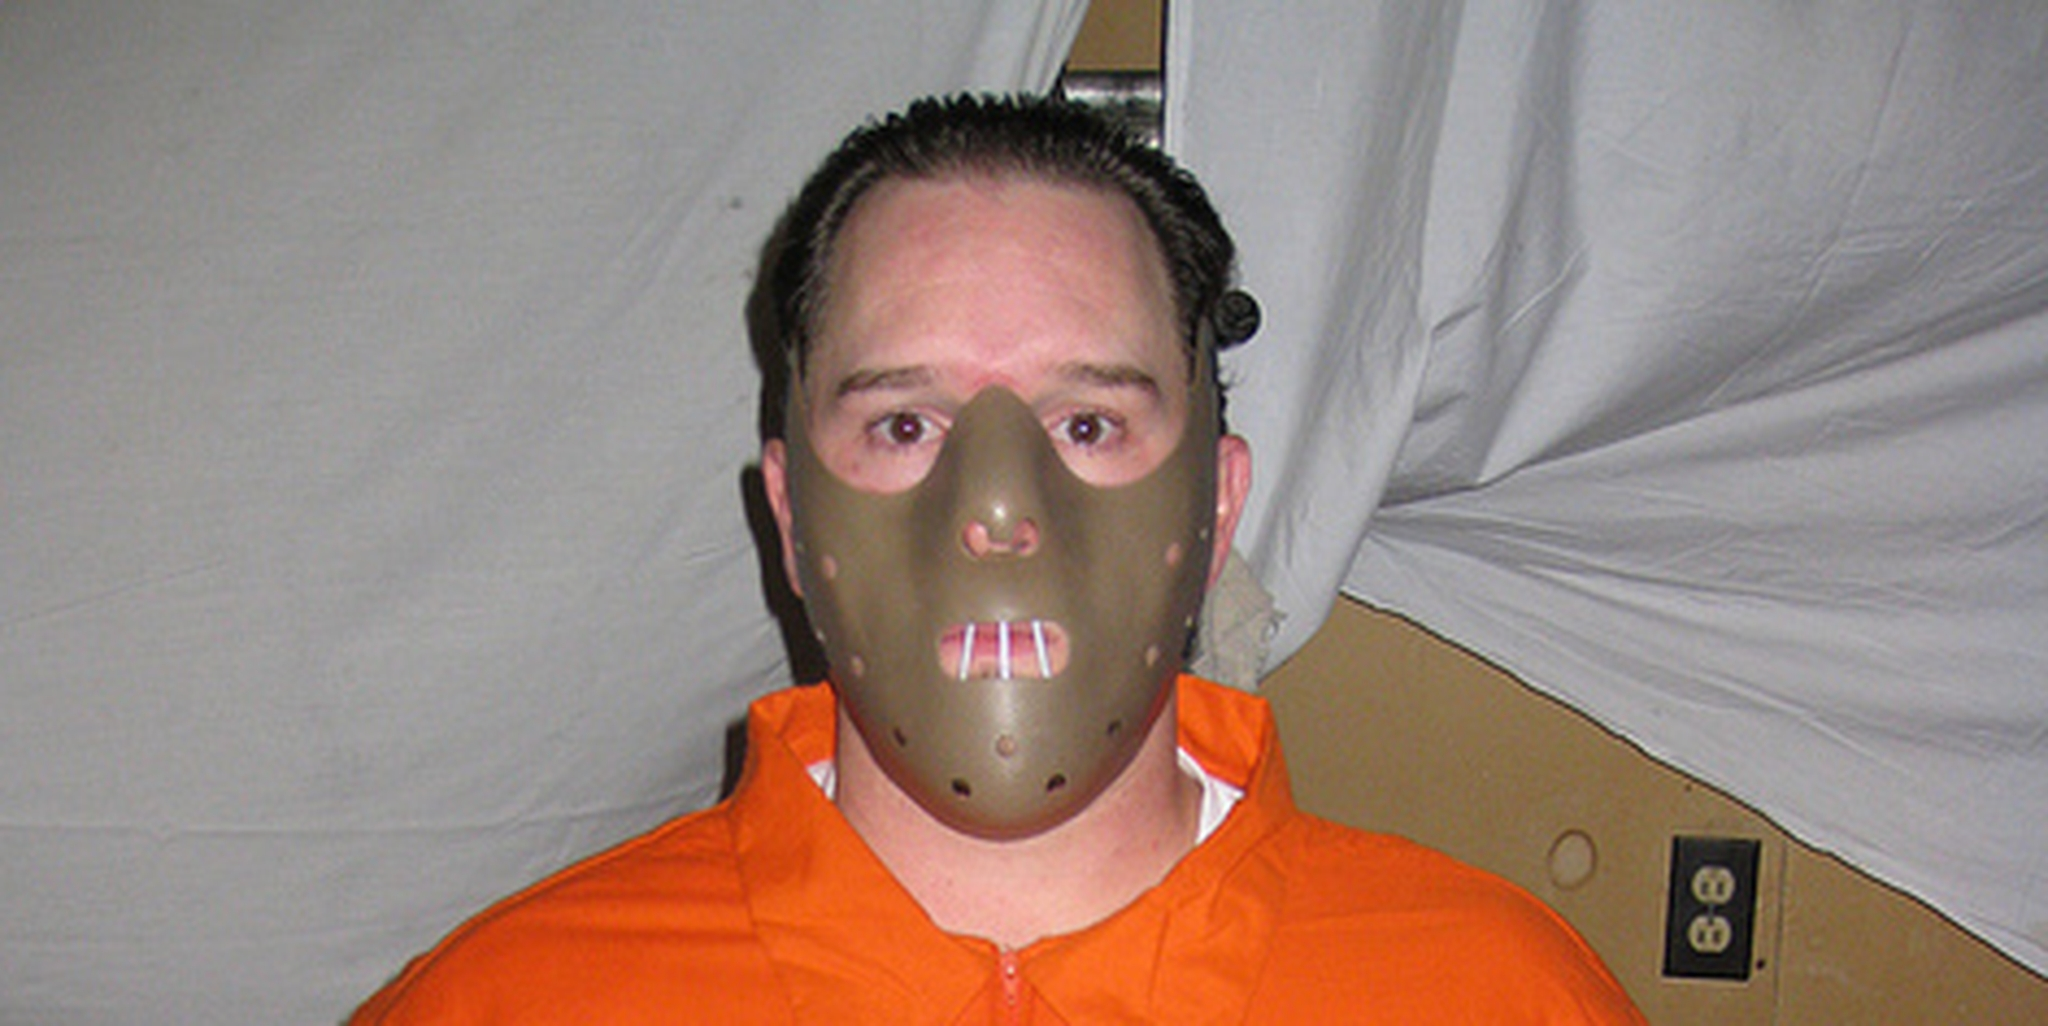 All sizes | Hannibal Lecter, Cannibalistic Serial Killer | Flickr - Photo Sharing!